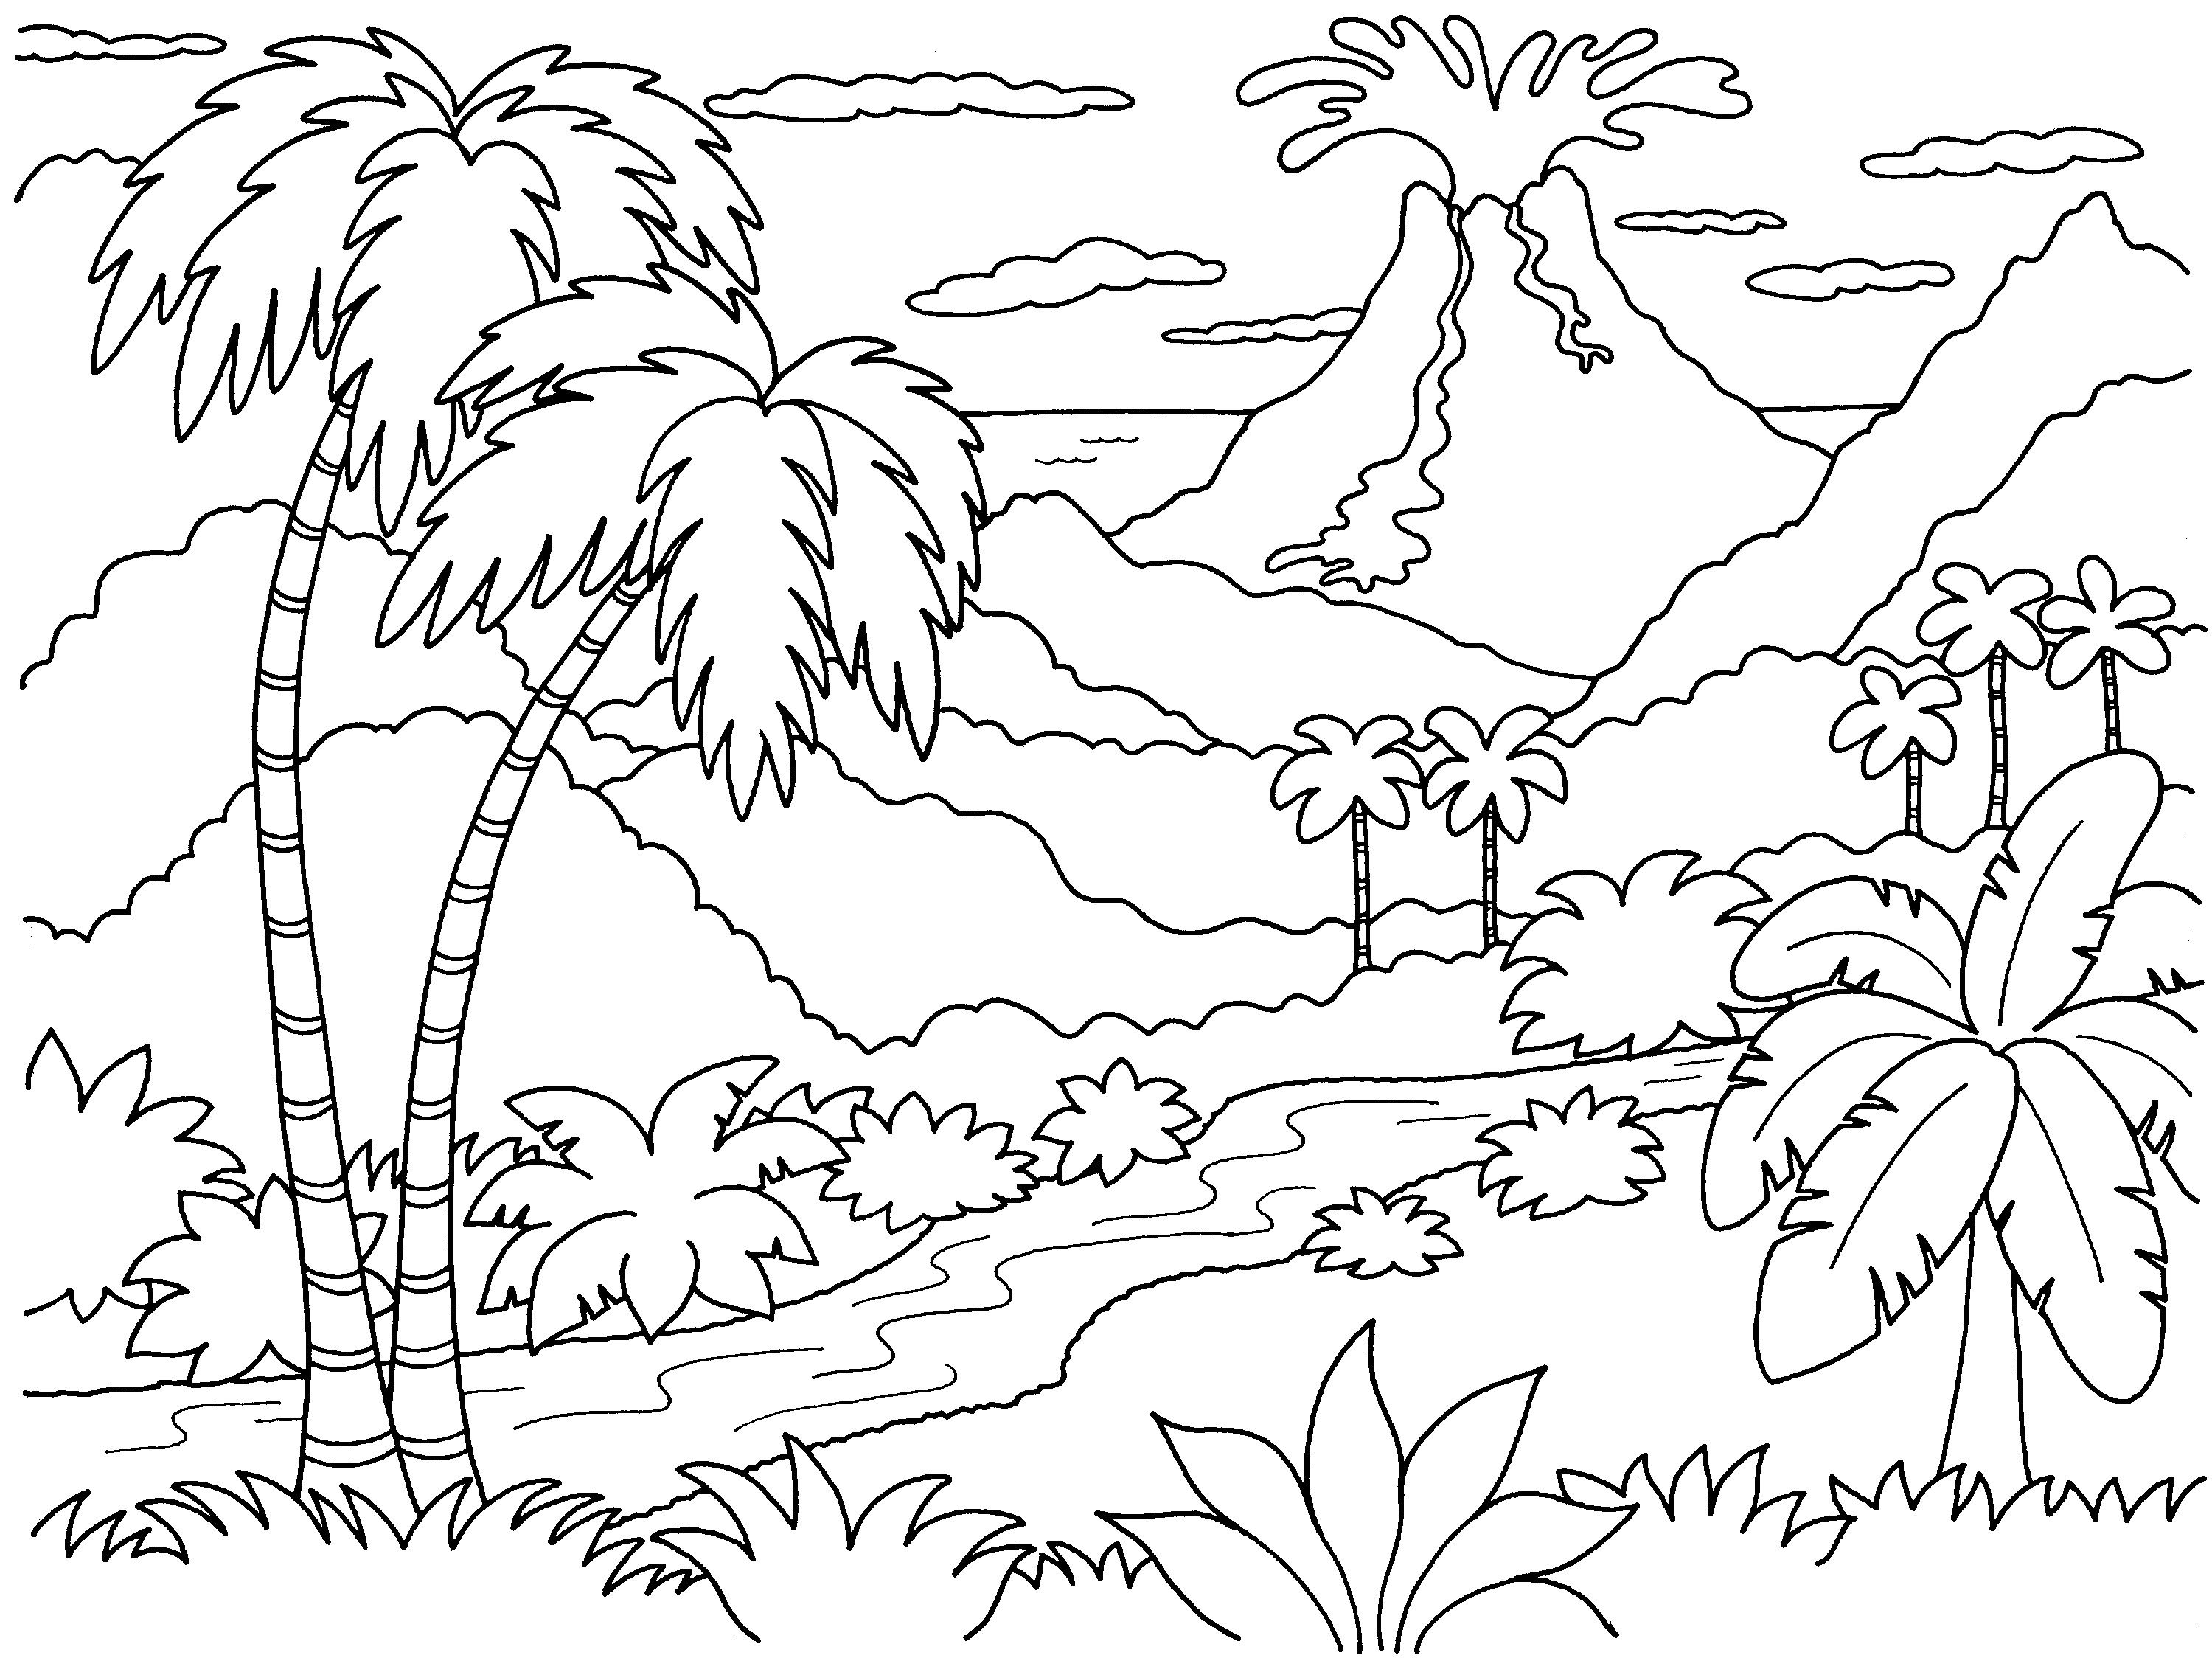 Nature Island Coloring Pages | Print Coloring Pages - Best Island - Free Printable Nature Coloring Pages